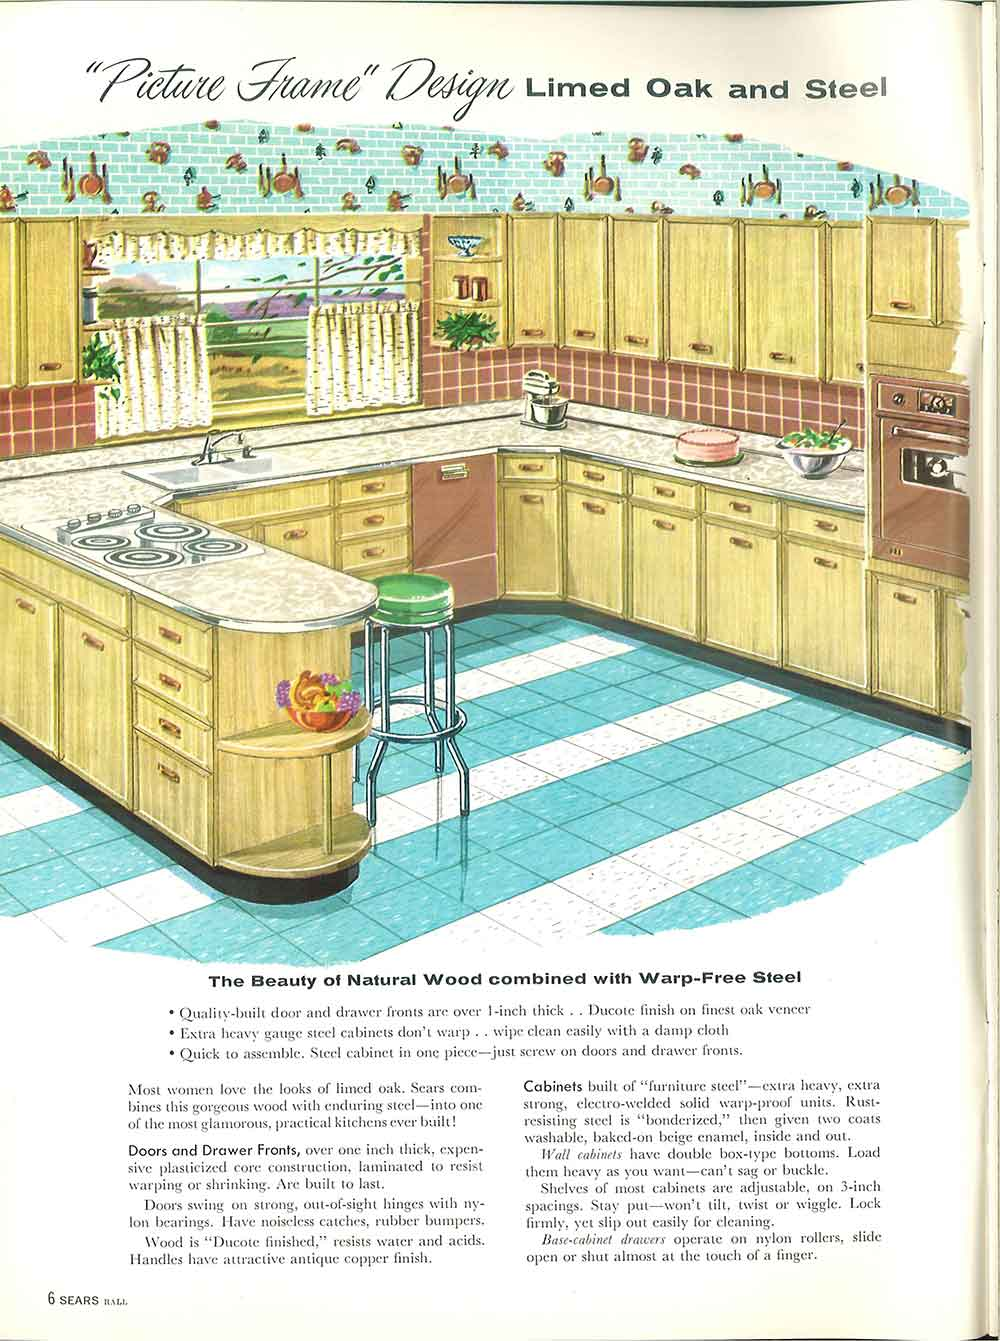 st charles steel kitchen cabinets ikea pantry 1958 sears and more - 32 page catalog ...